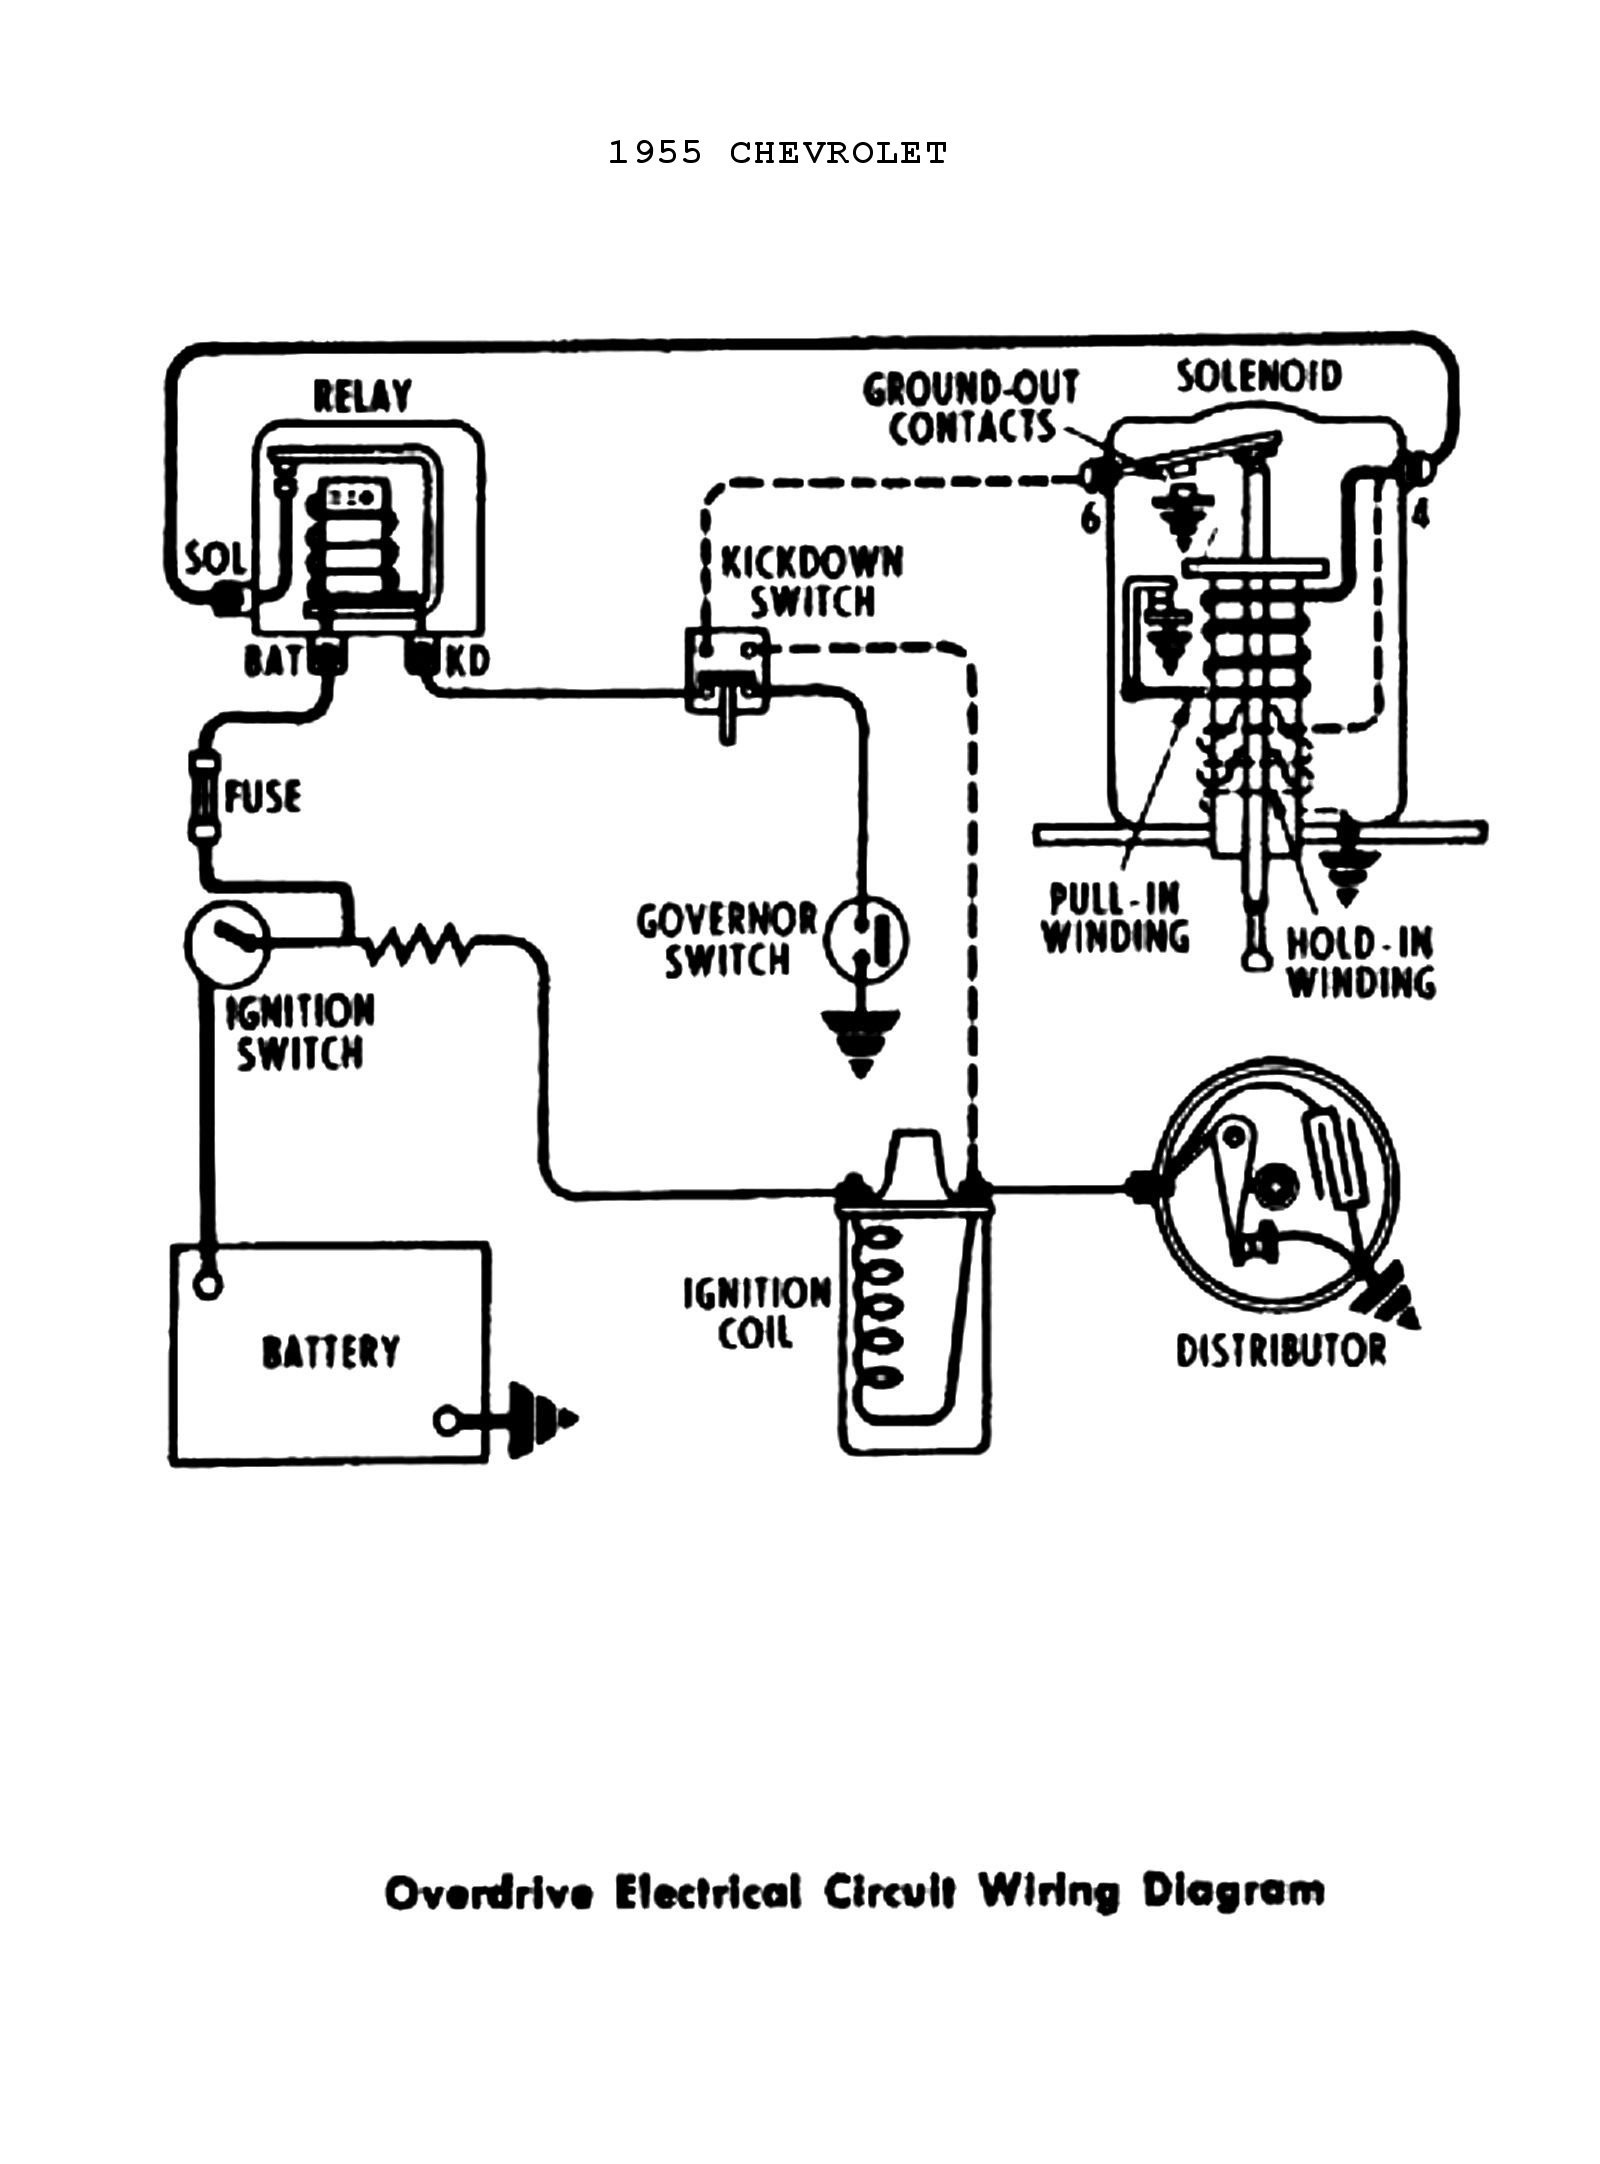 Wiring Diagrams for Chevy Trucks Chevy Wiring Diagrams Of Wiring Diagrams for Chevy Trucks